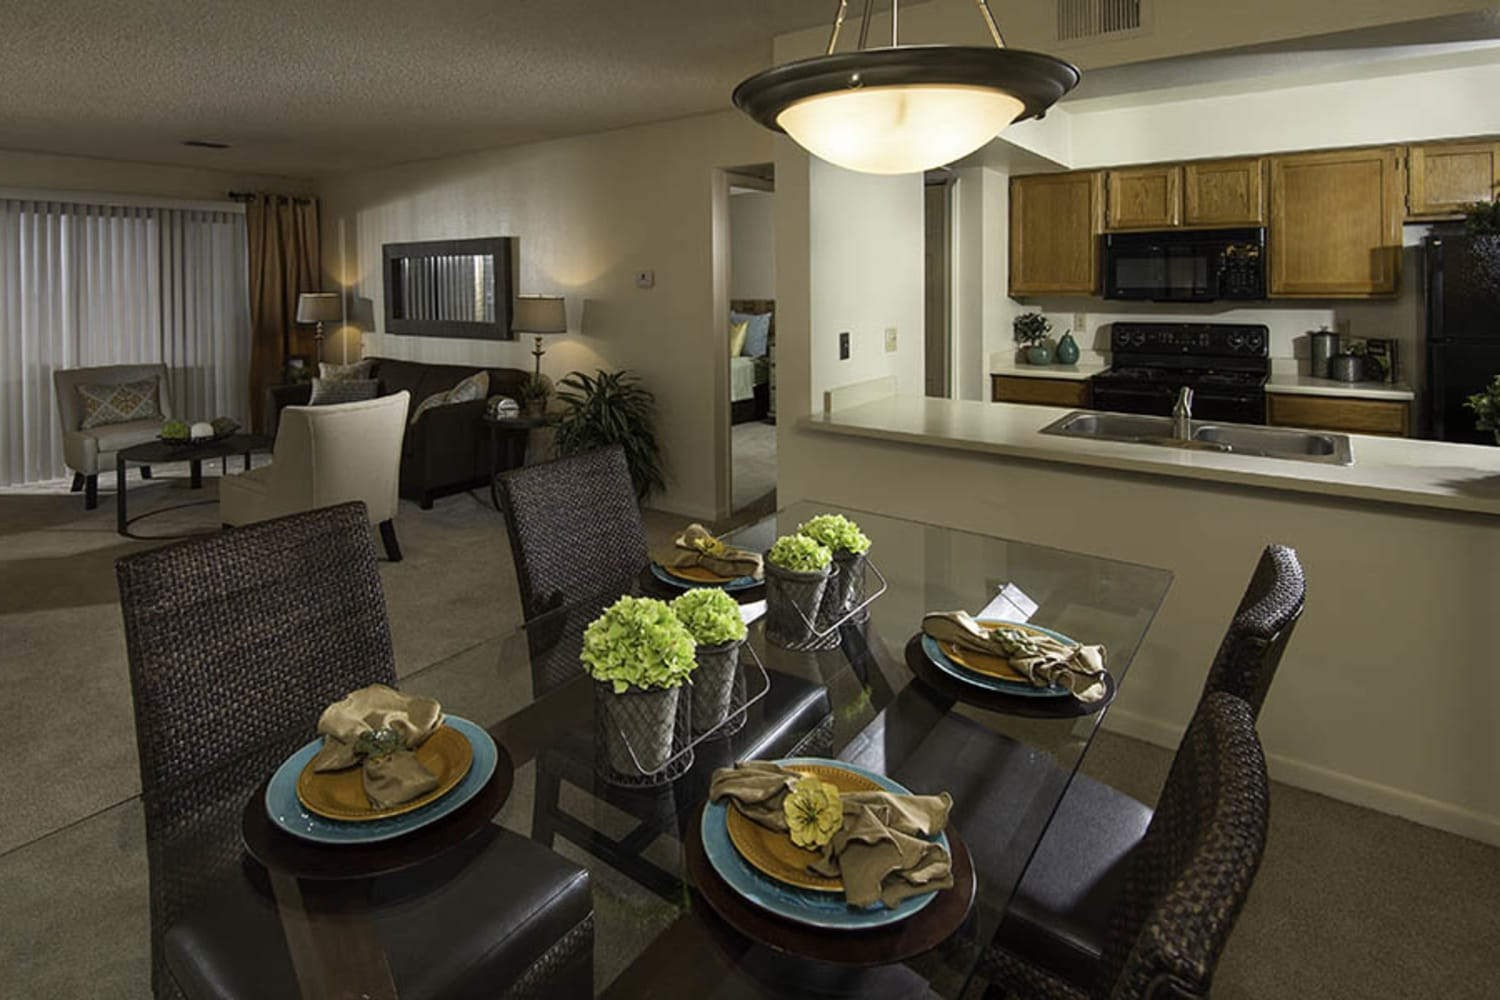 Waterford Place Apartments offer spacious open floor plans in Mesa, Arizona